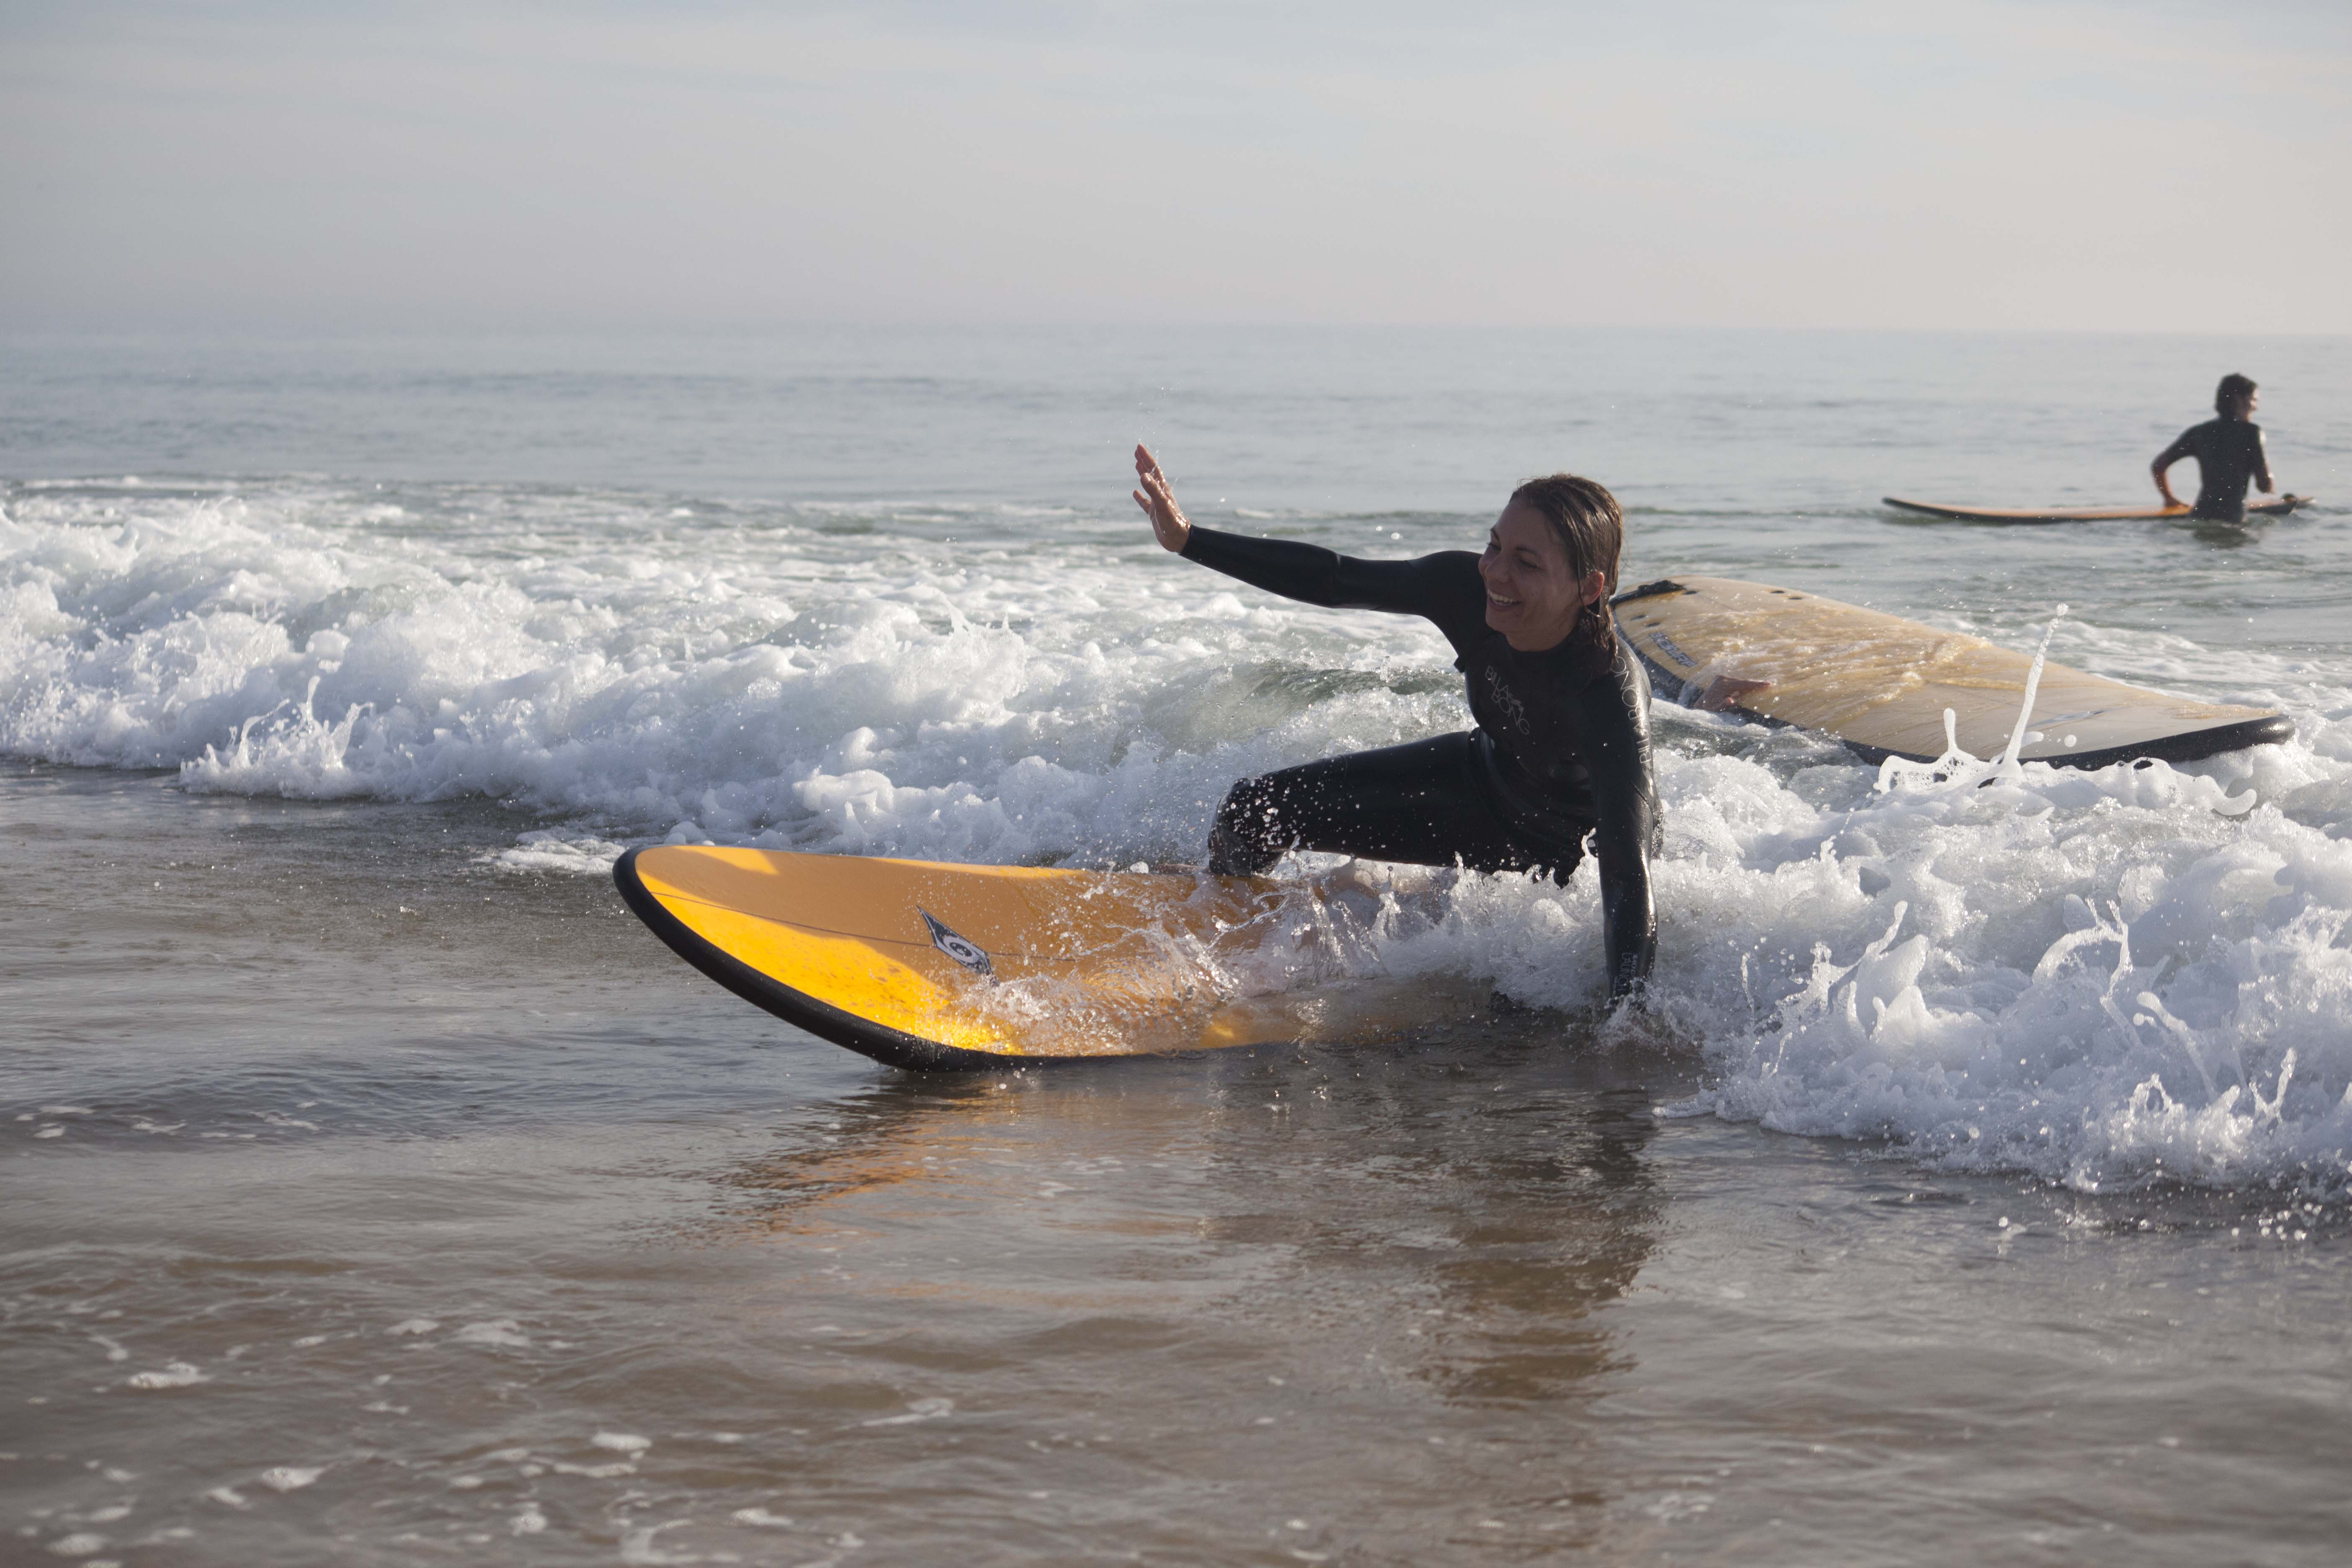 Yoga-Surf-Camp Spanien El Palmar Aframe